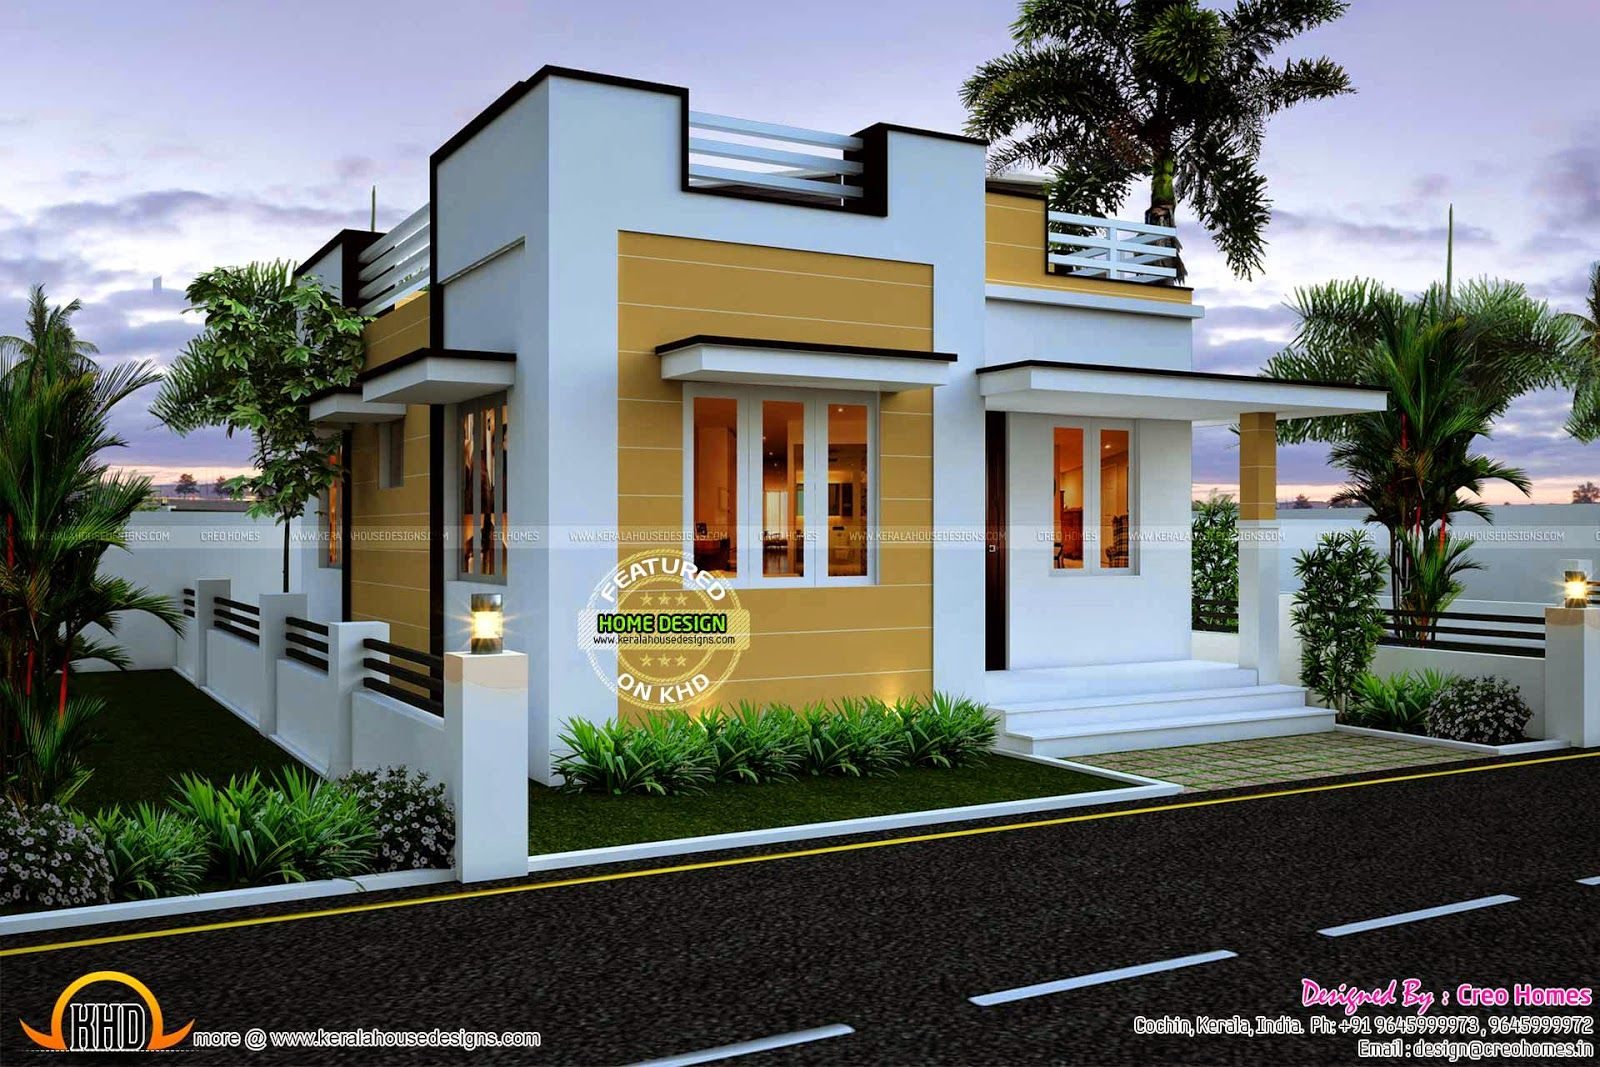 Check The Photos Of Some 35 Most Affordable And Simple Design That You Can Pattern Your Dream Ho Philippines House Design Bungalow House Design Bungalow Design